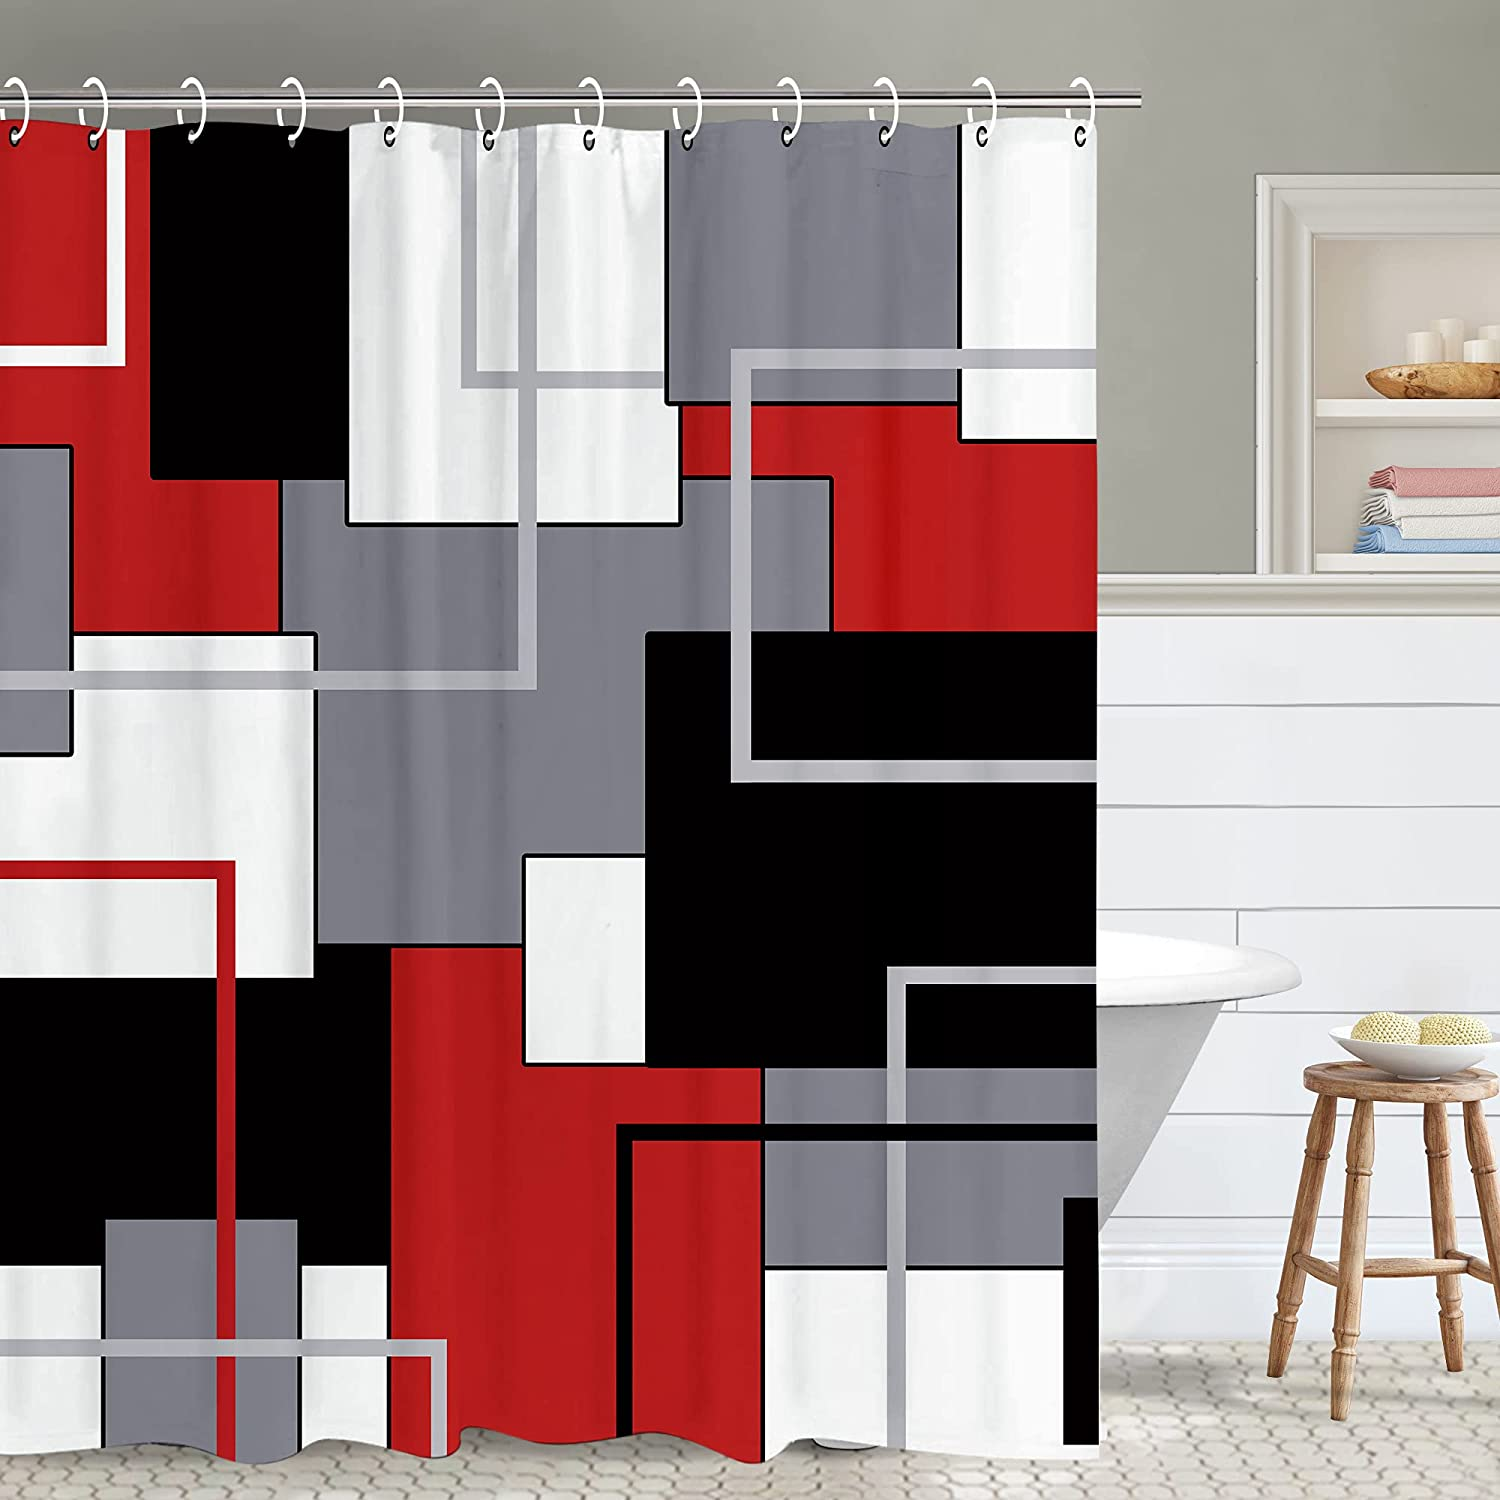 Red Geometry Shower Curtain,Red and Black Modern Shower Curtains Set with 12 Hooks, Waterproof Abstract Shower Curtain, Decor Art Bathing Curtain,72x84inch